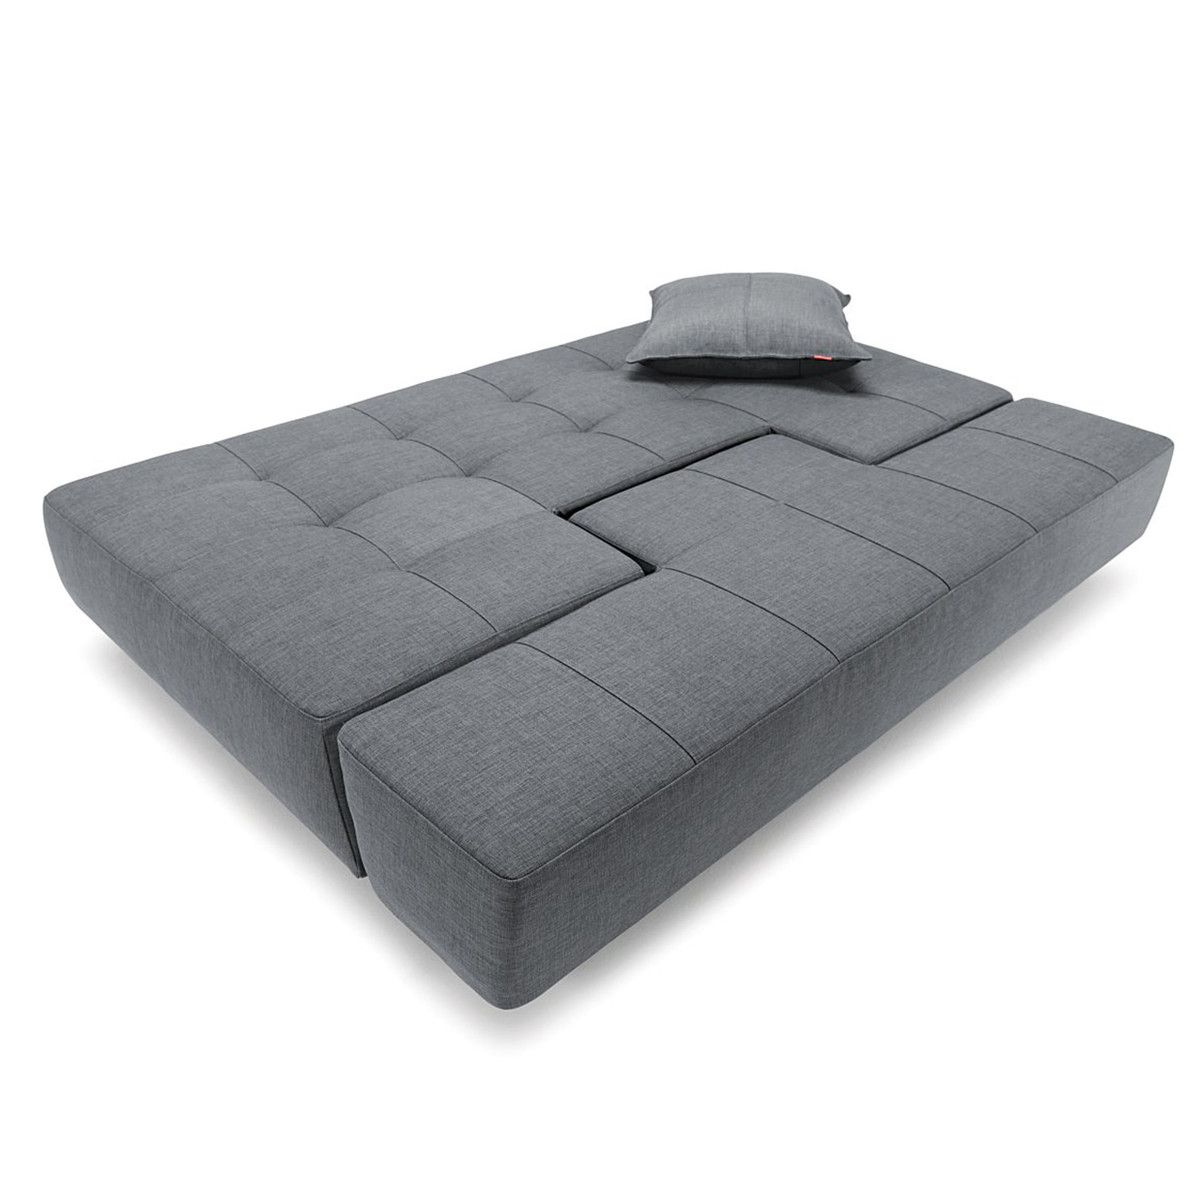 So Cool A Sofa That Folds Down Into A Full Size Bed Perfect